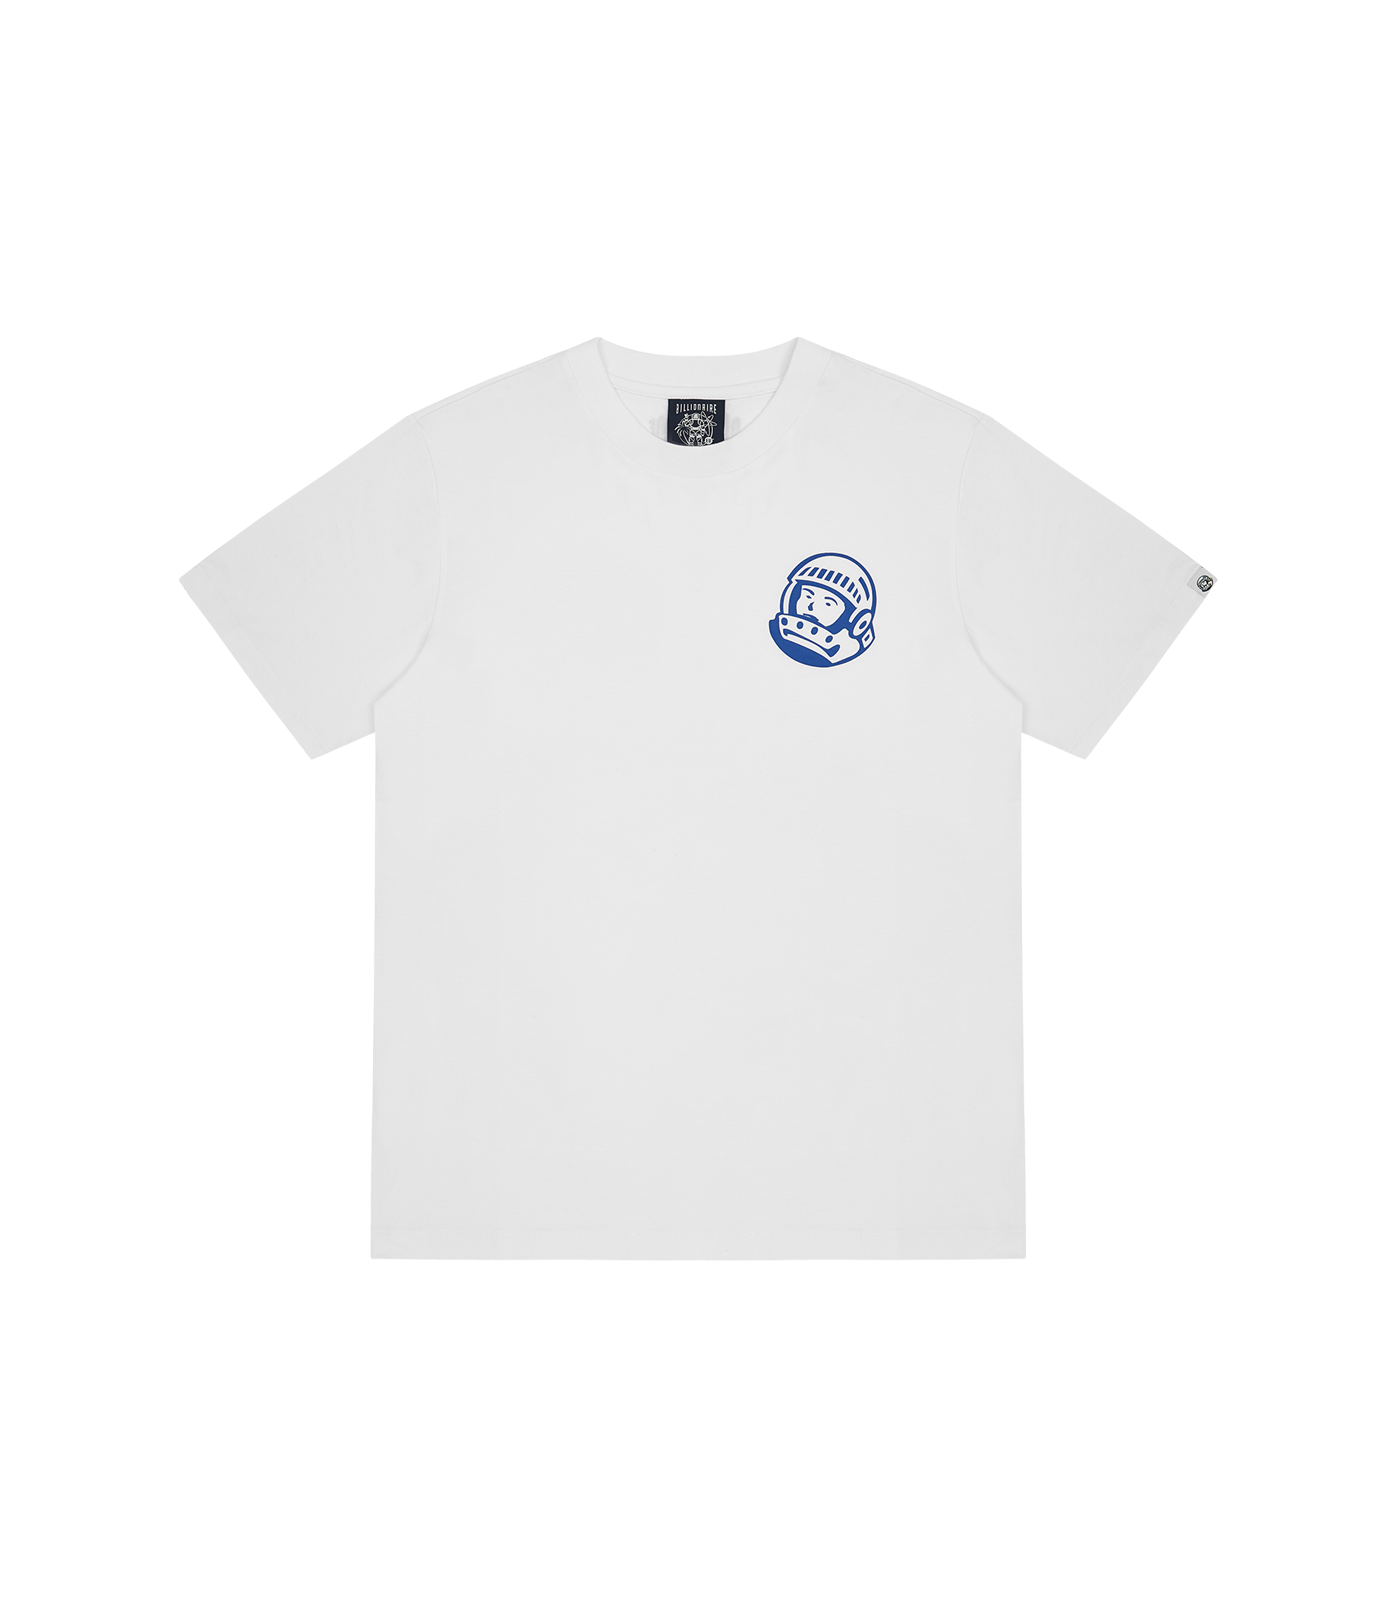 SMALL ASTRO HELMET LOGO T-SHIRT - WHITE